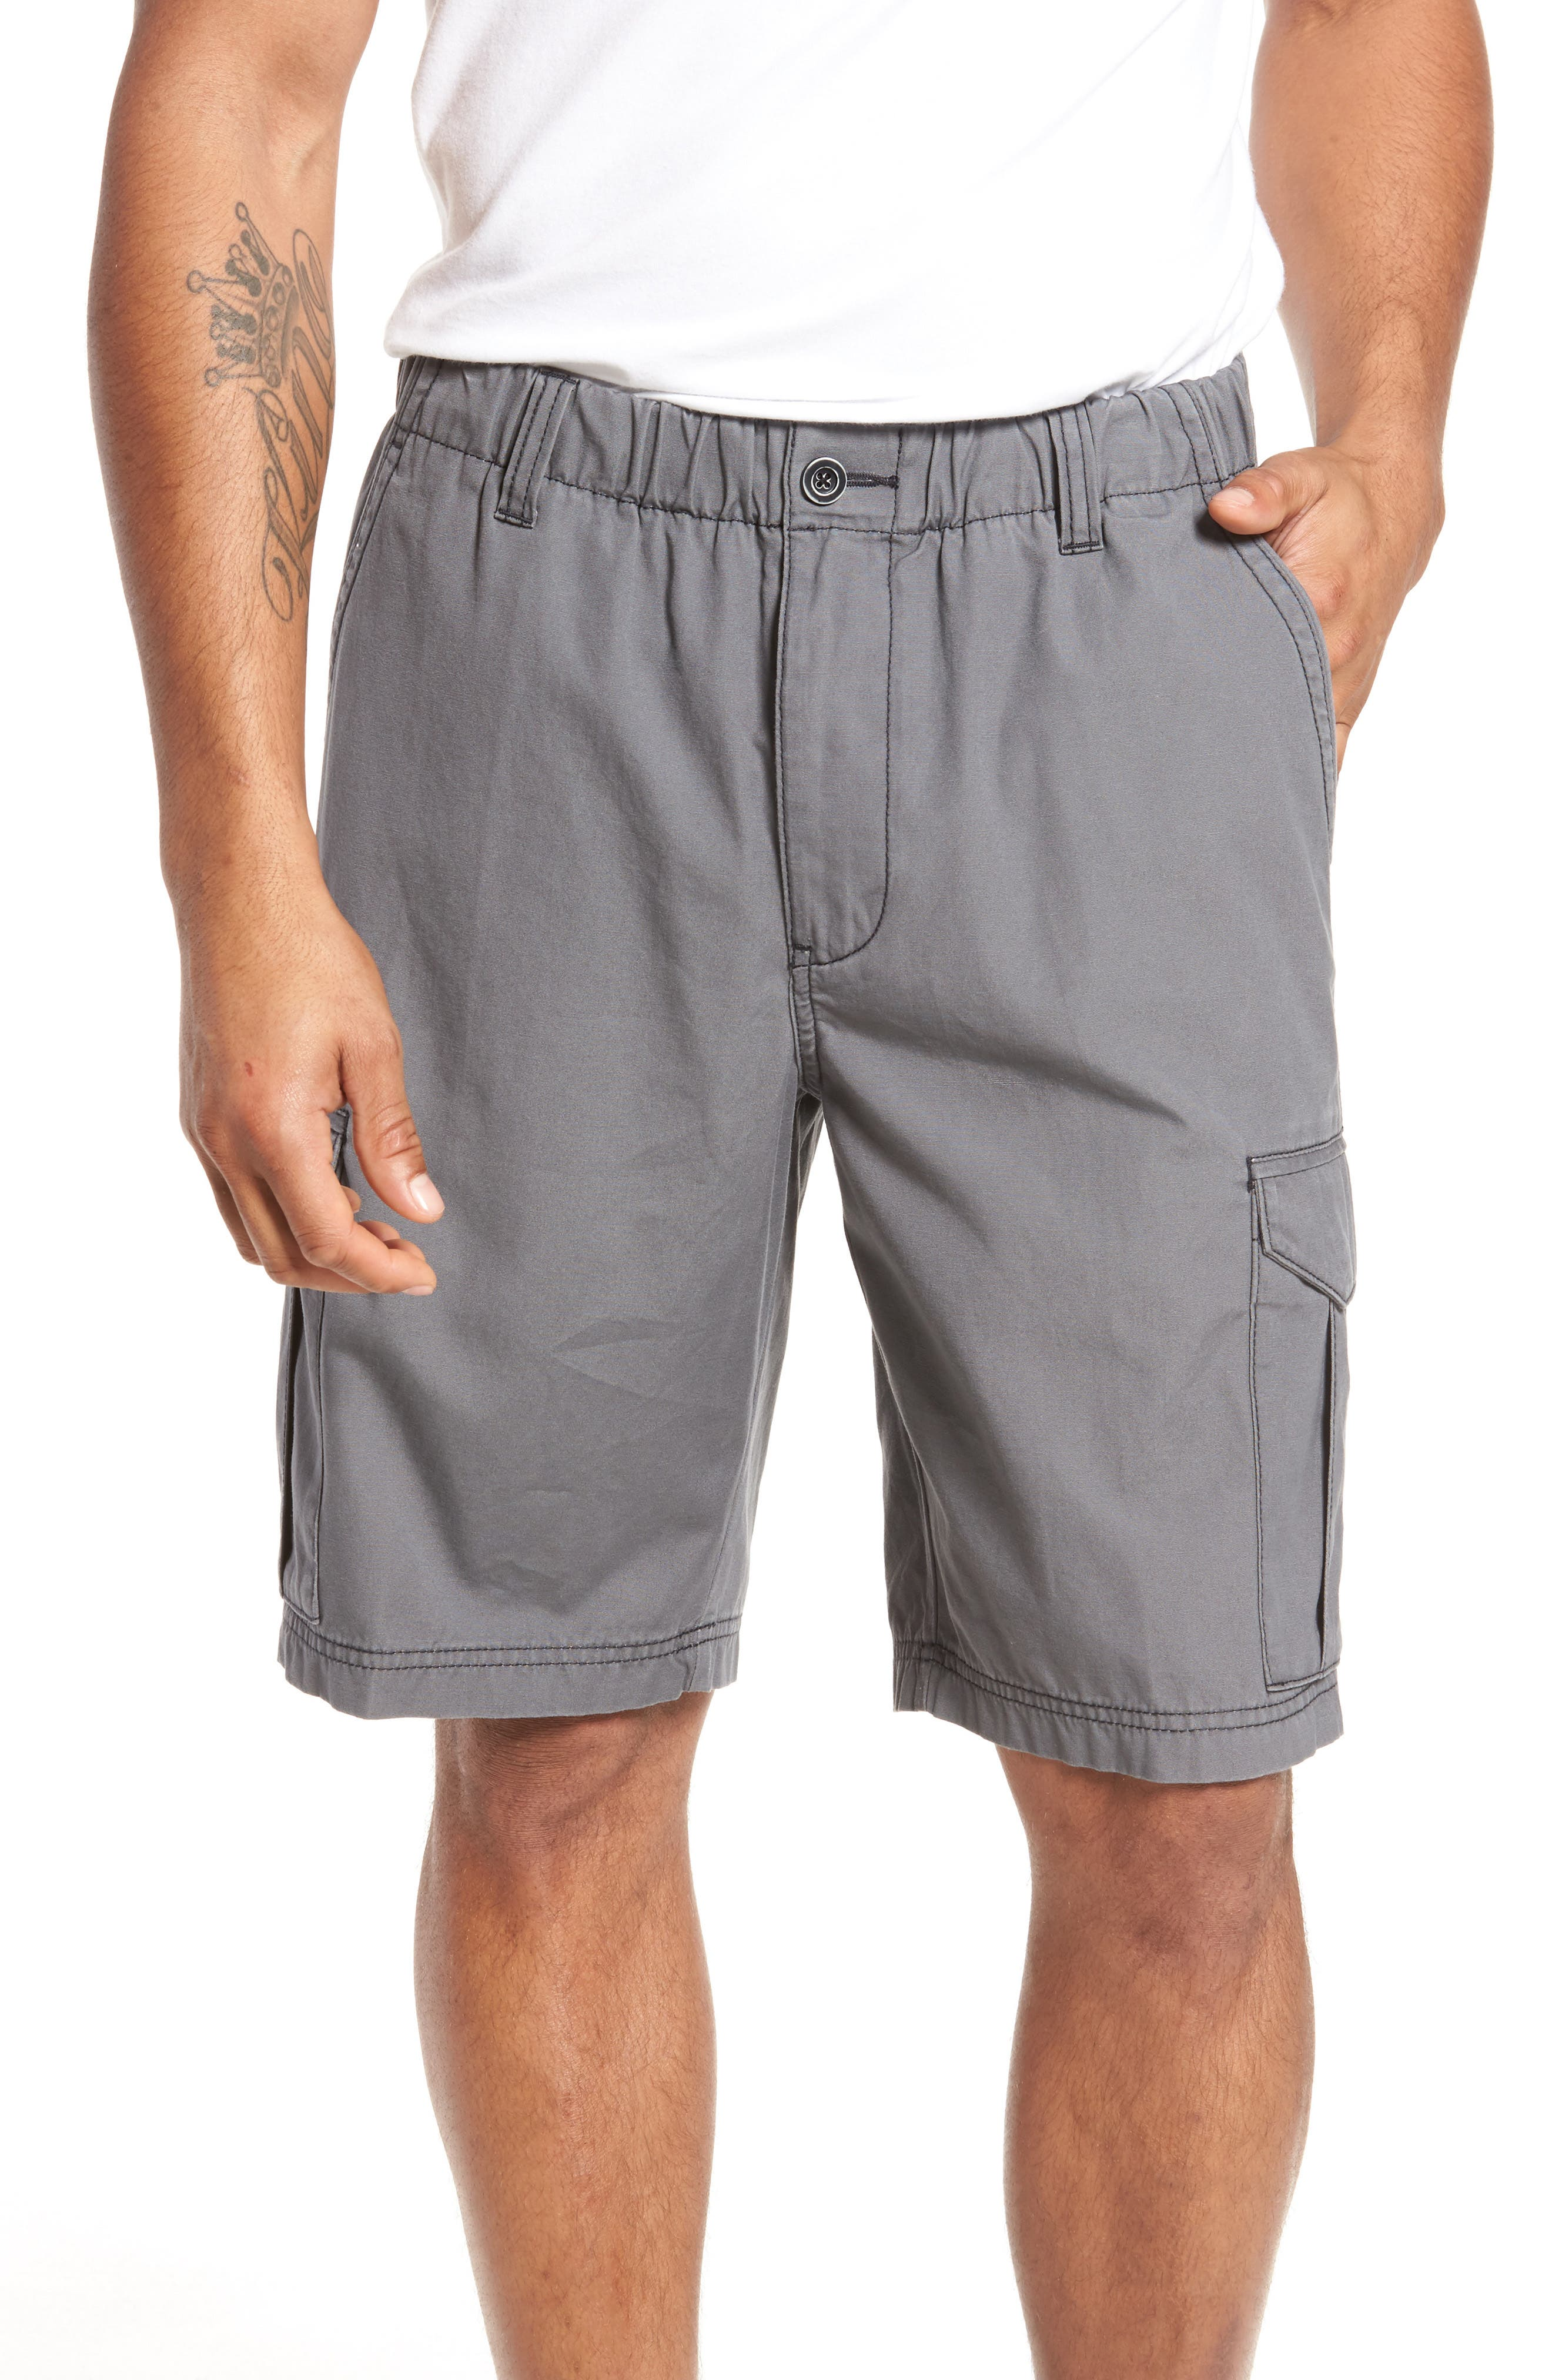 Island Survivalist Cargo Shorts,                             Main thumbnail 1, color,                             Fog Grey